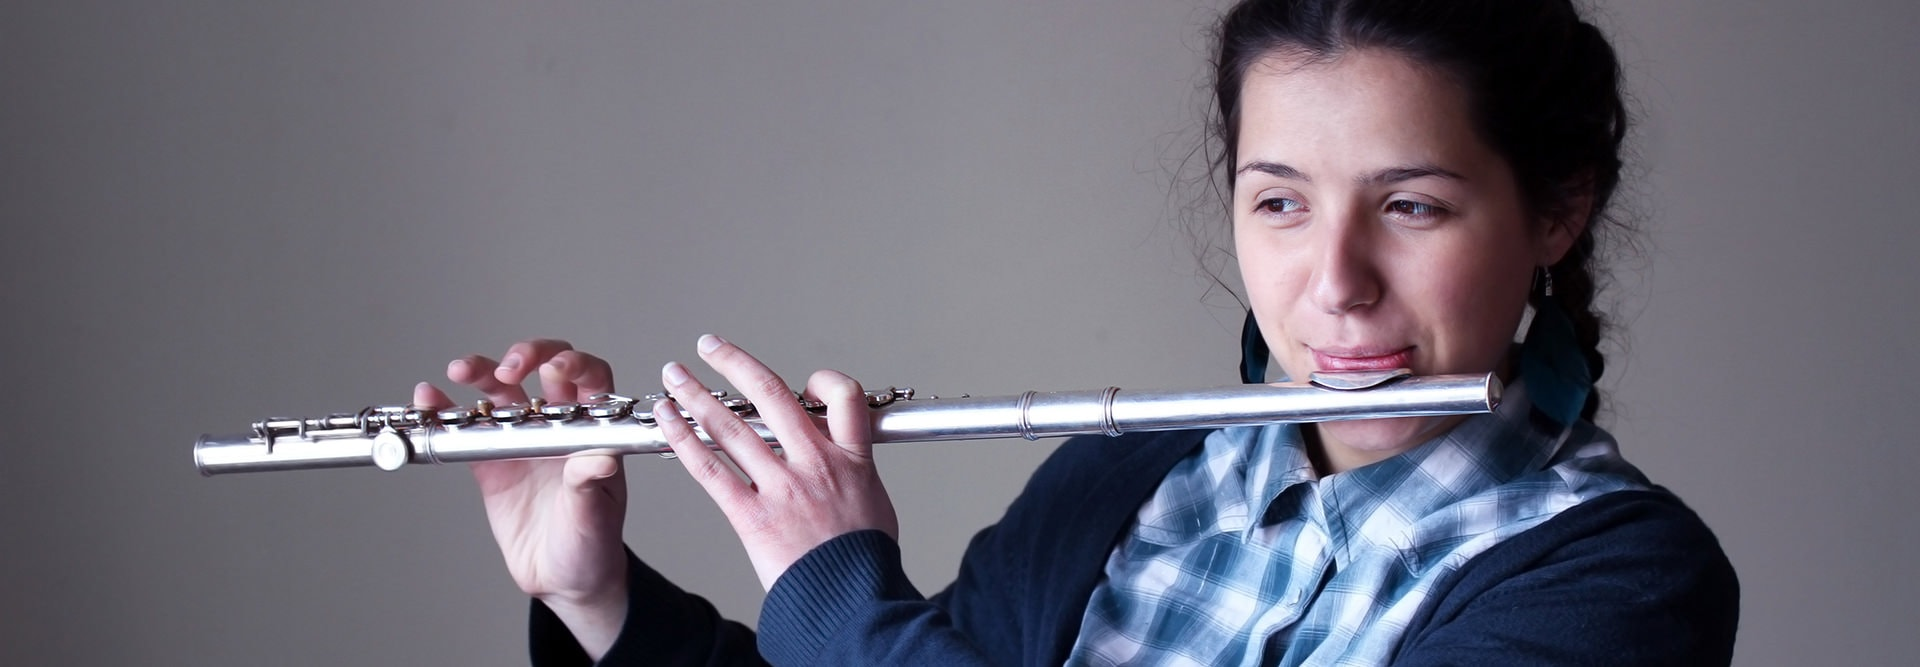 learn to play flute, how to play flute, flute lessons